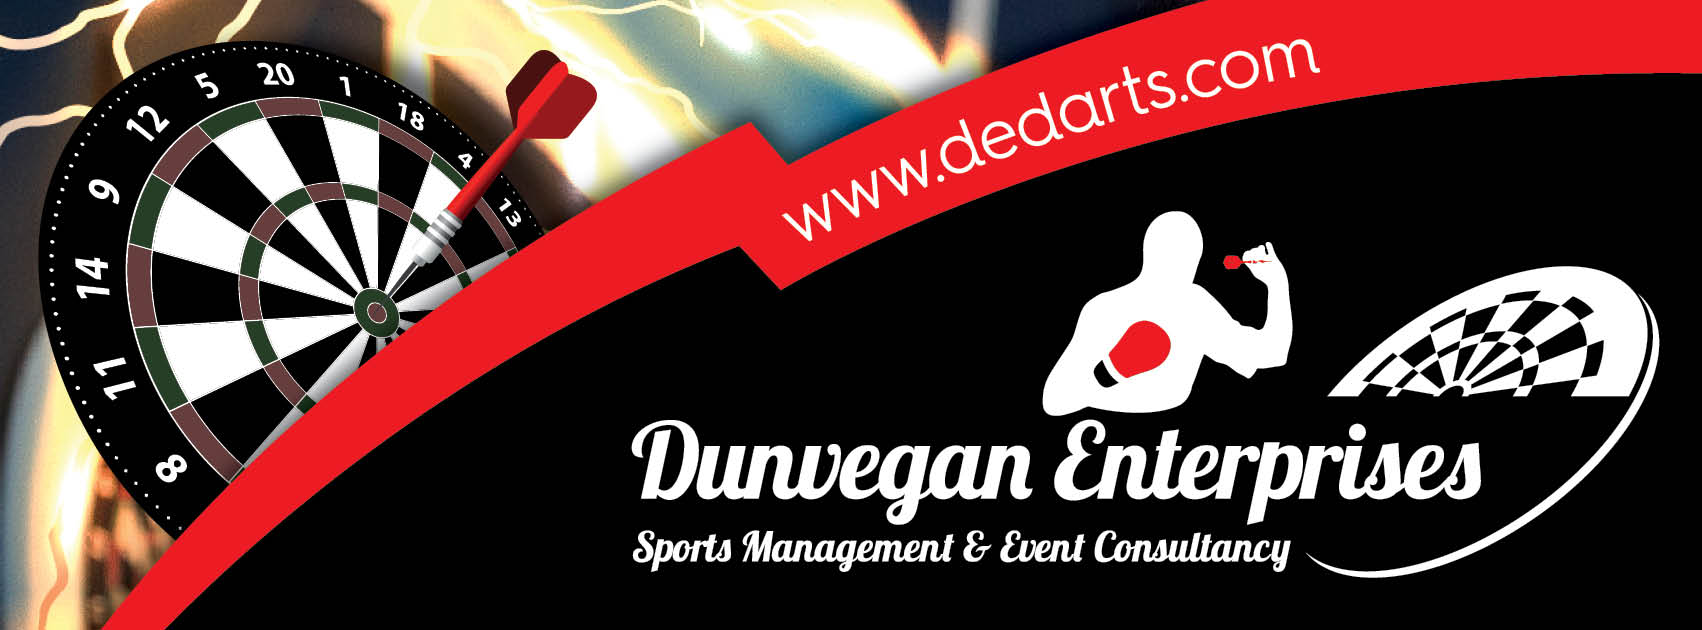 Dunvegan Enterprises logo and web address with dartsboard